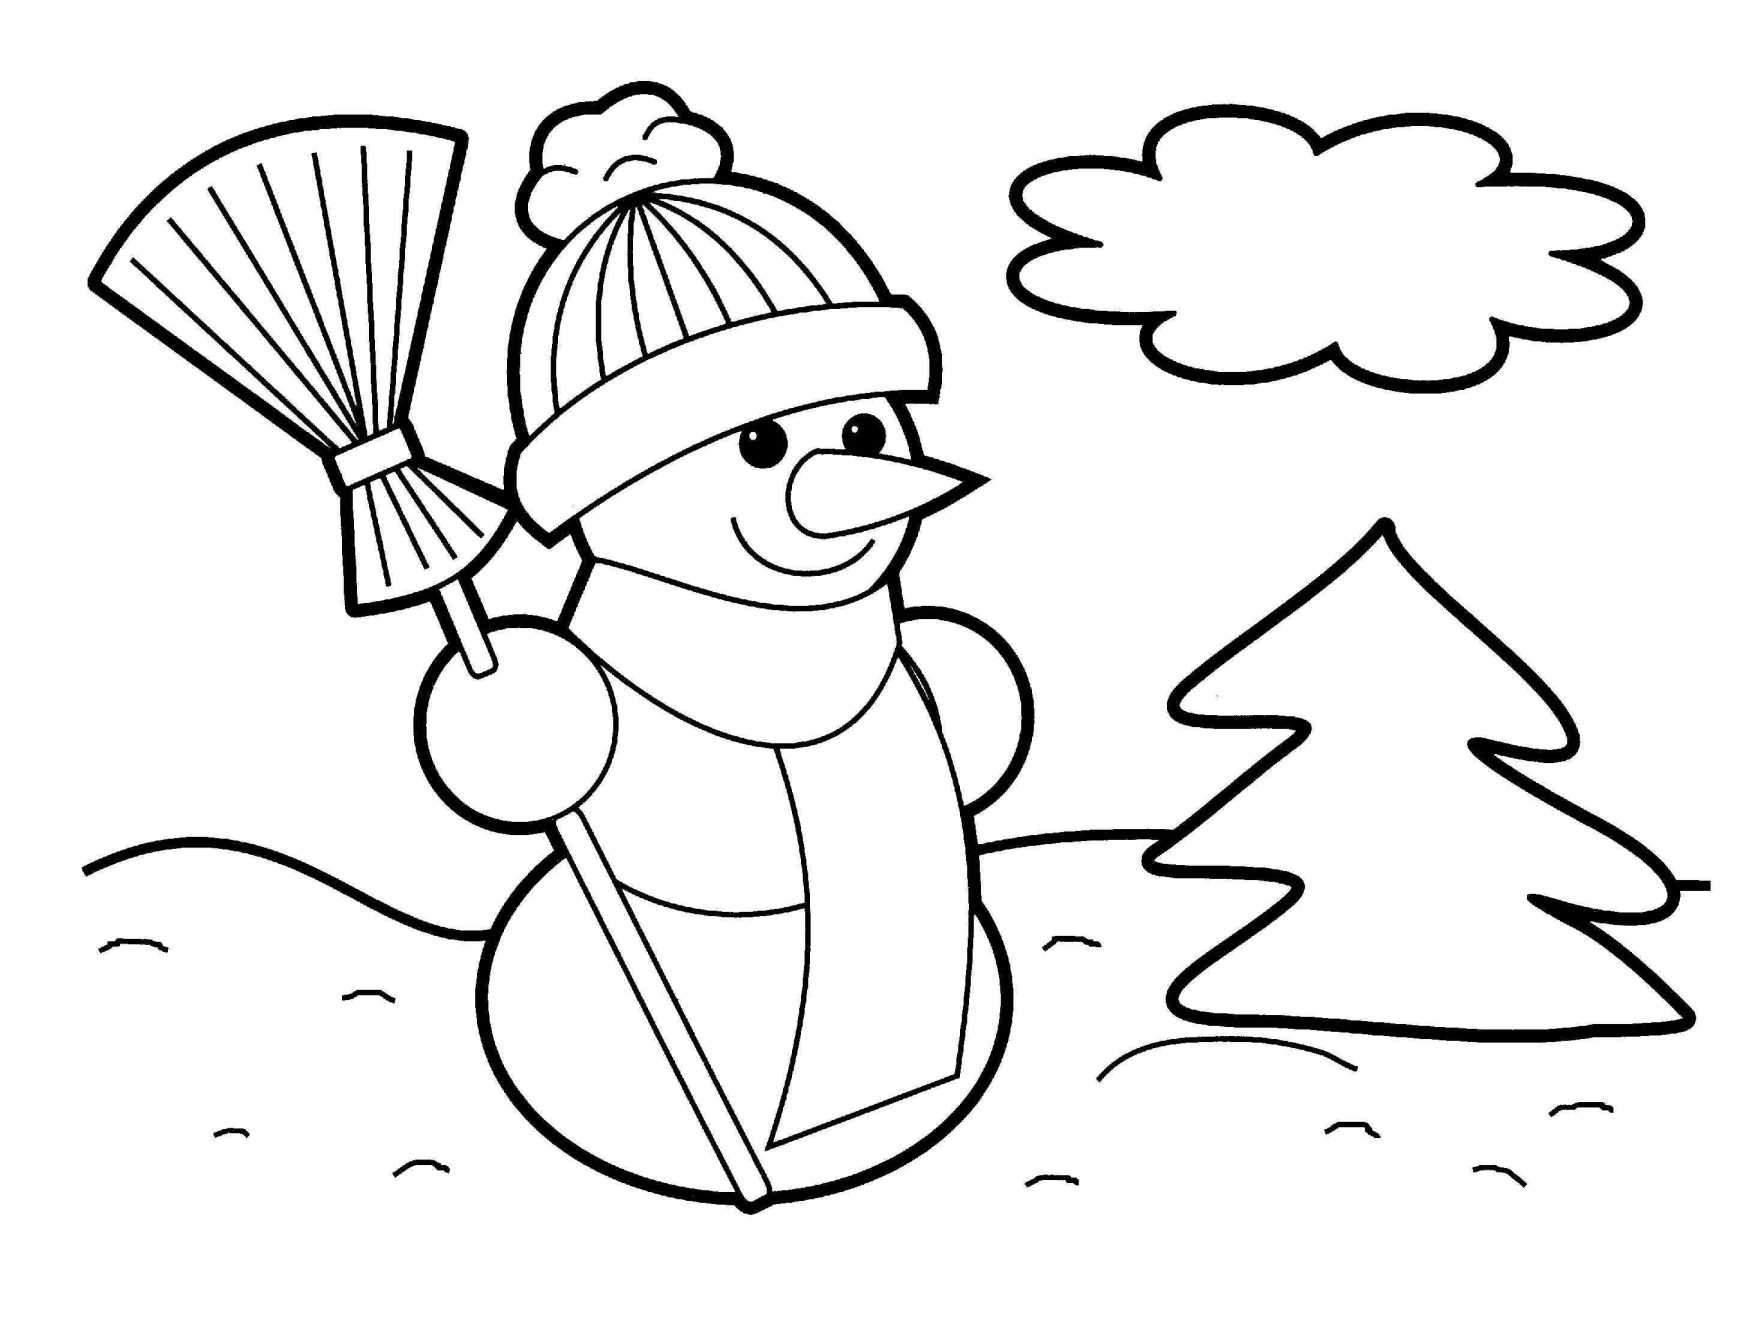 Best Of Christmas Coloring Pages With Animals Free Color Sheets